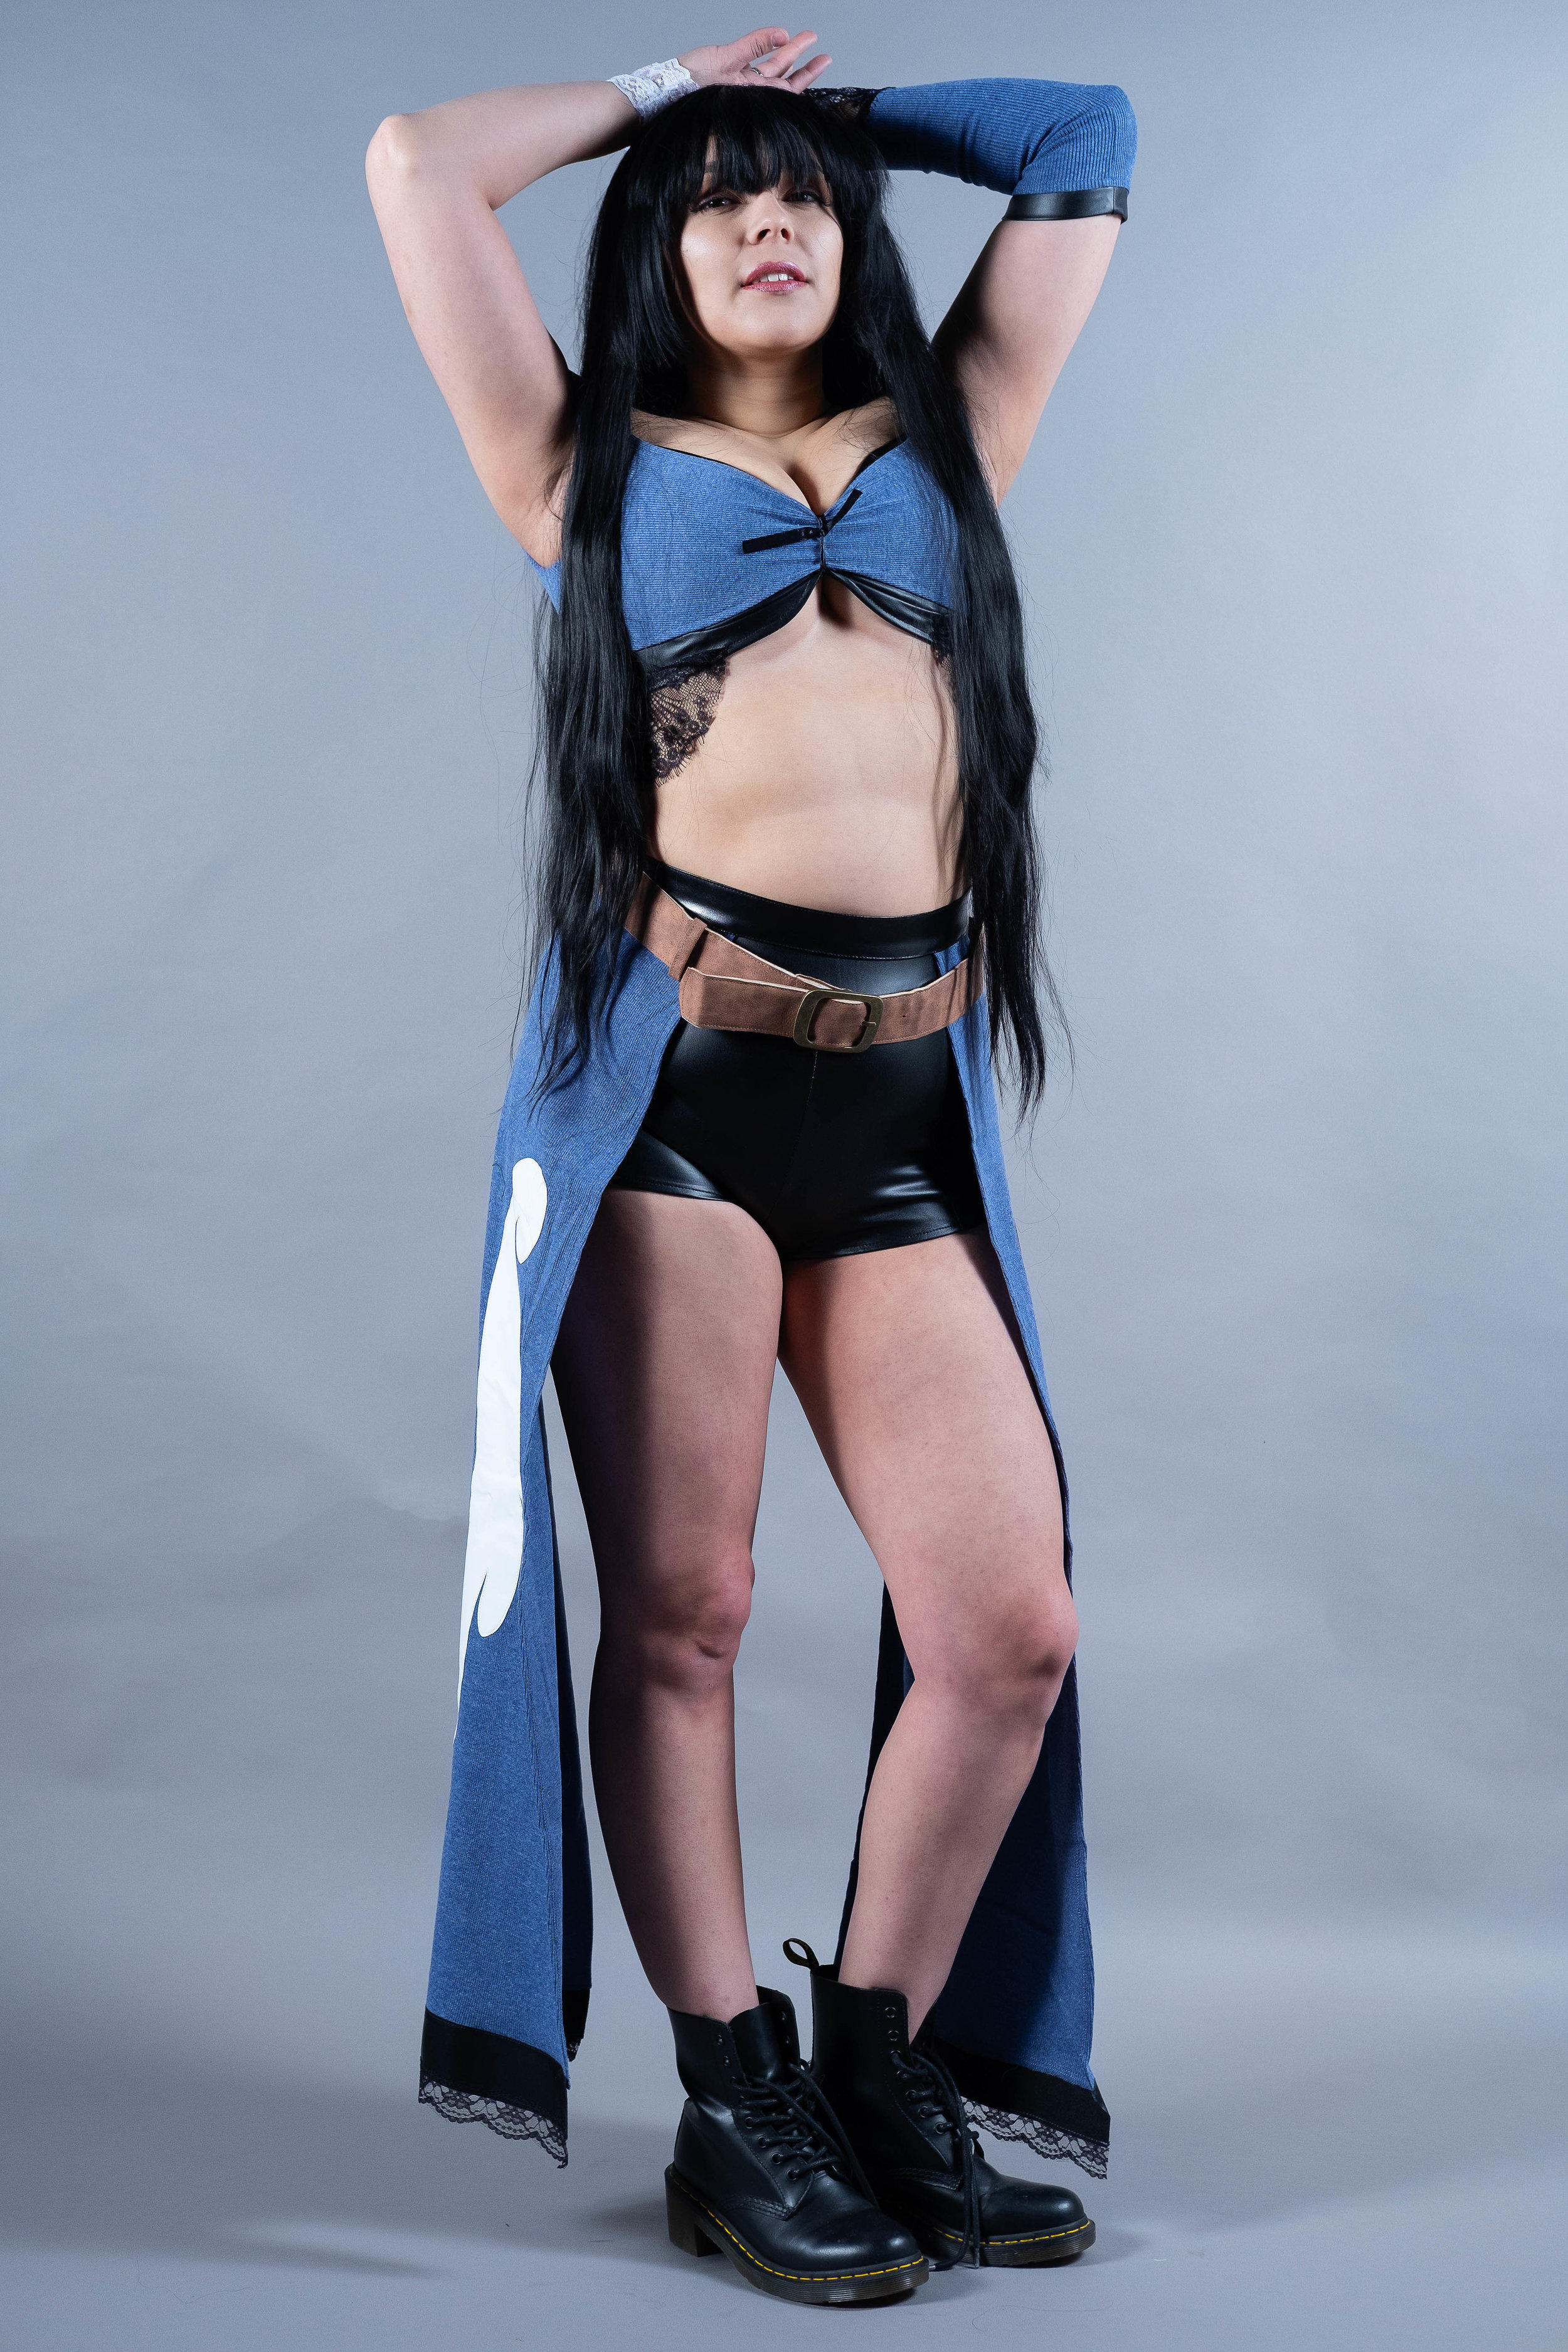 Mermaid Child cosplaying as Rinoa Heartilly from Final Fantasy 8